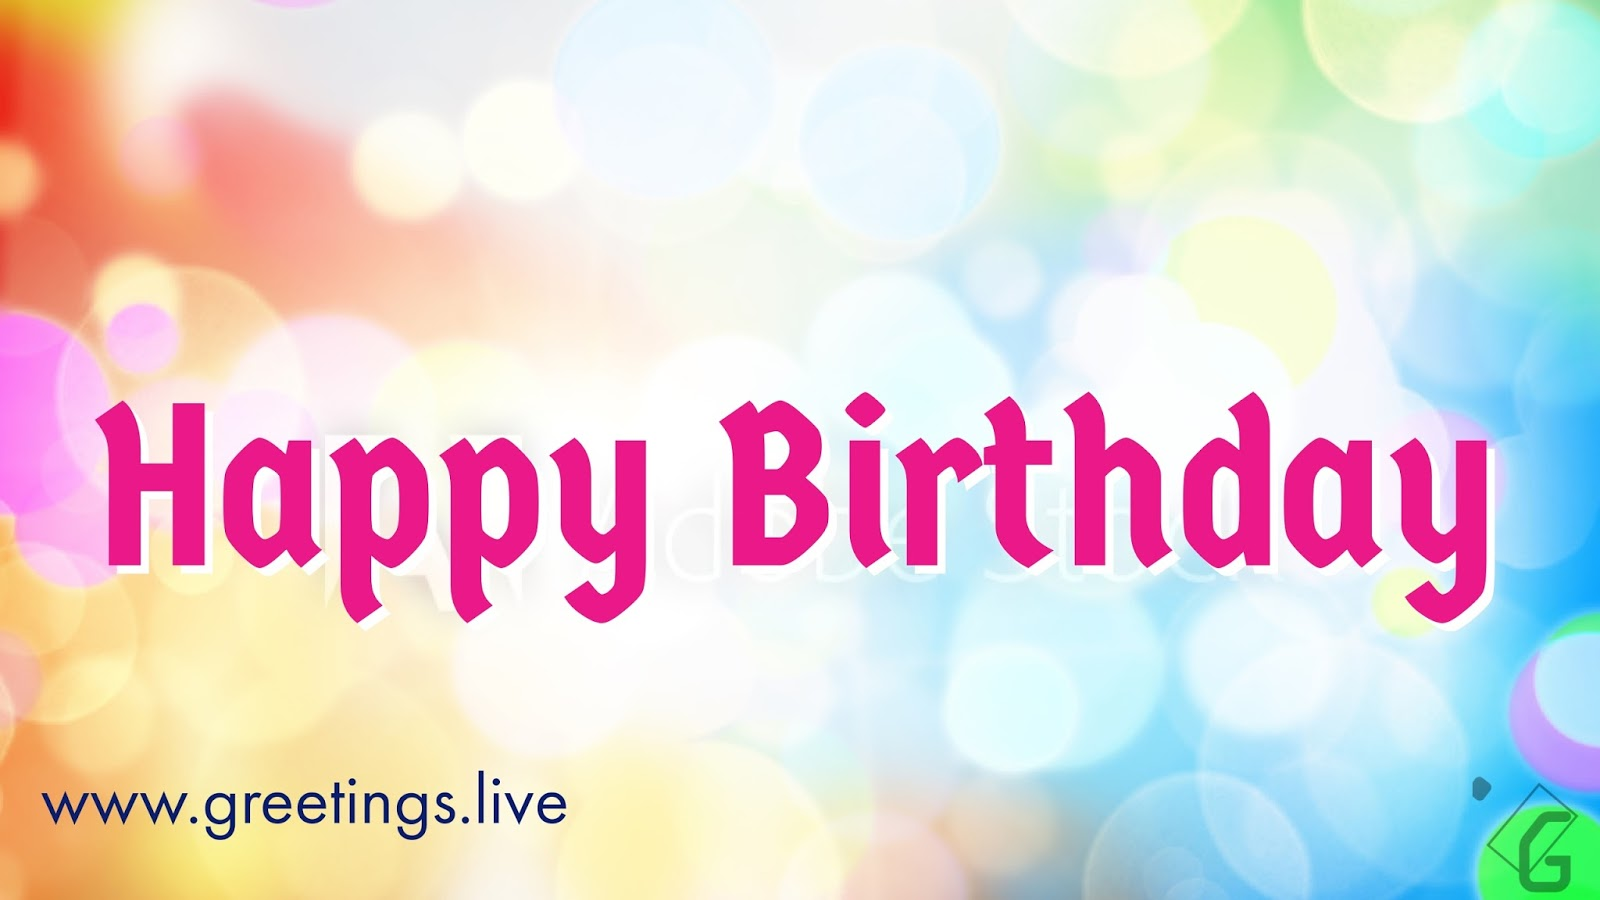 birthday wishes images hd free download ; Sparkling%252BHappy%252BBirthday%252BWishes%252BGreetings%252BLive